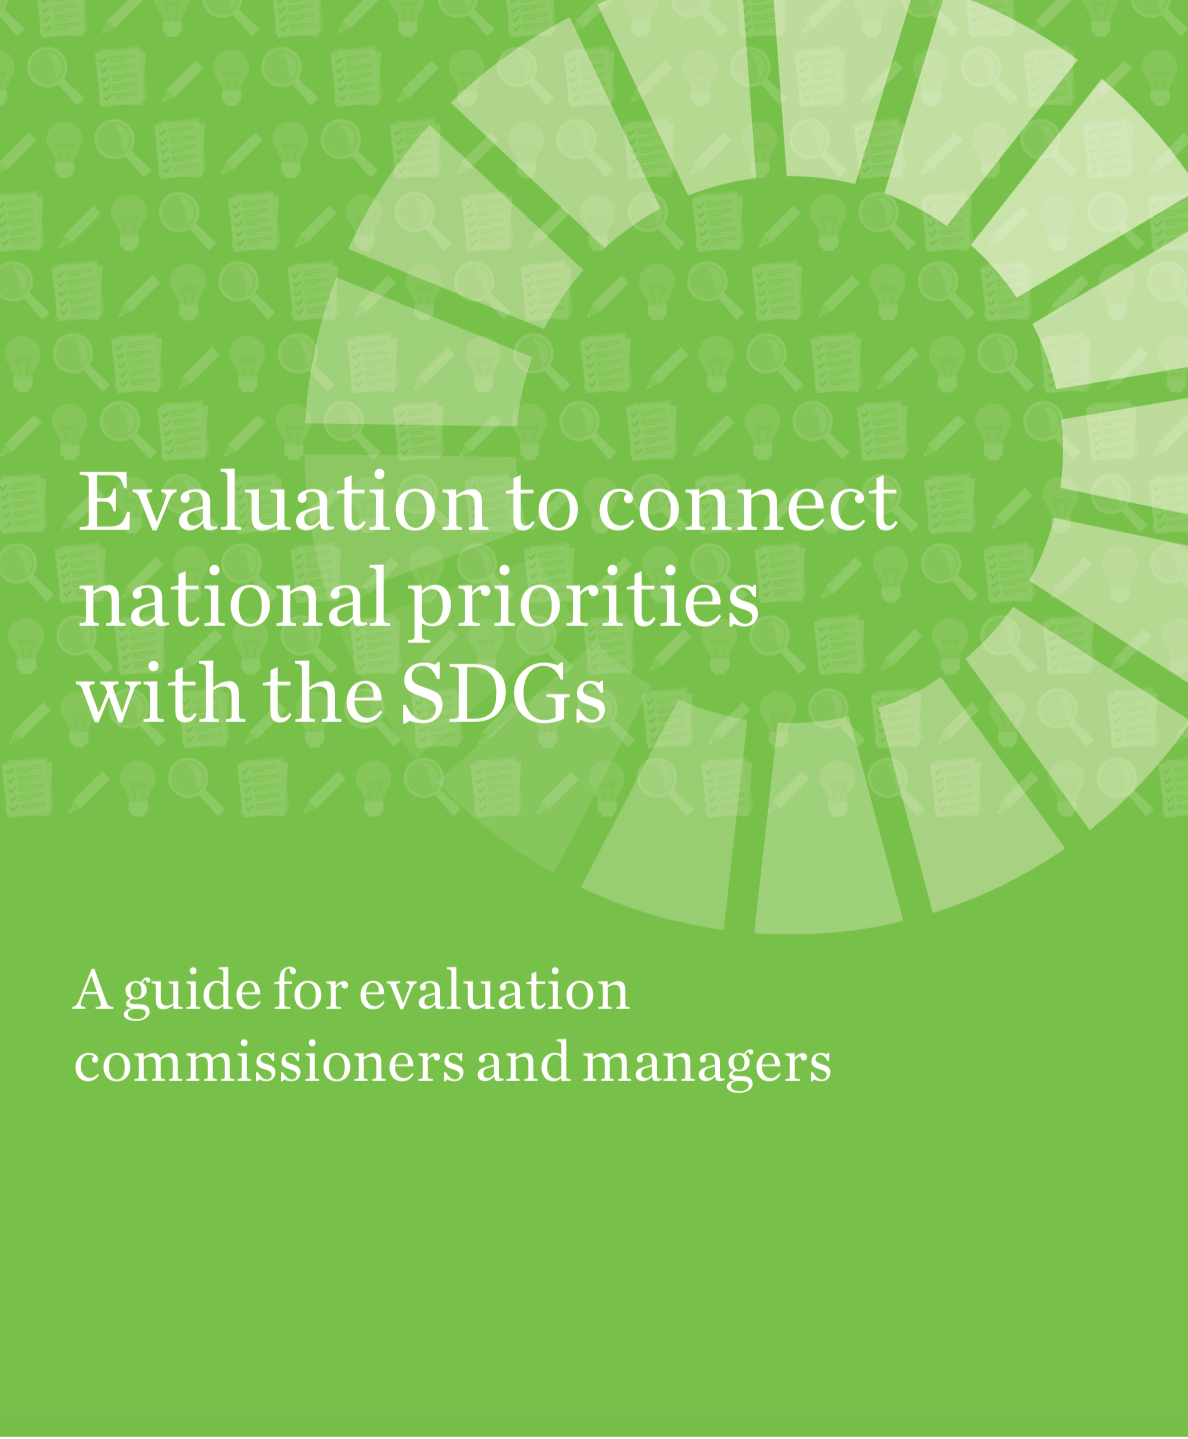 Evaluation to connect national priorities with the SDGs